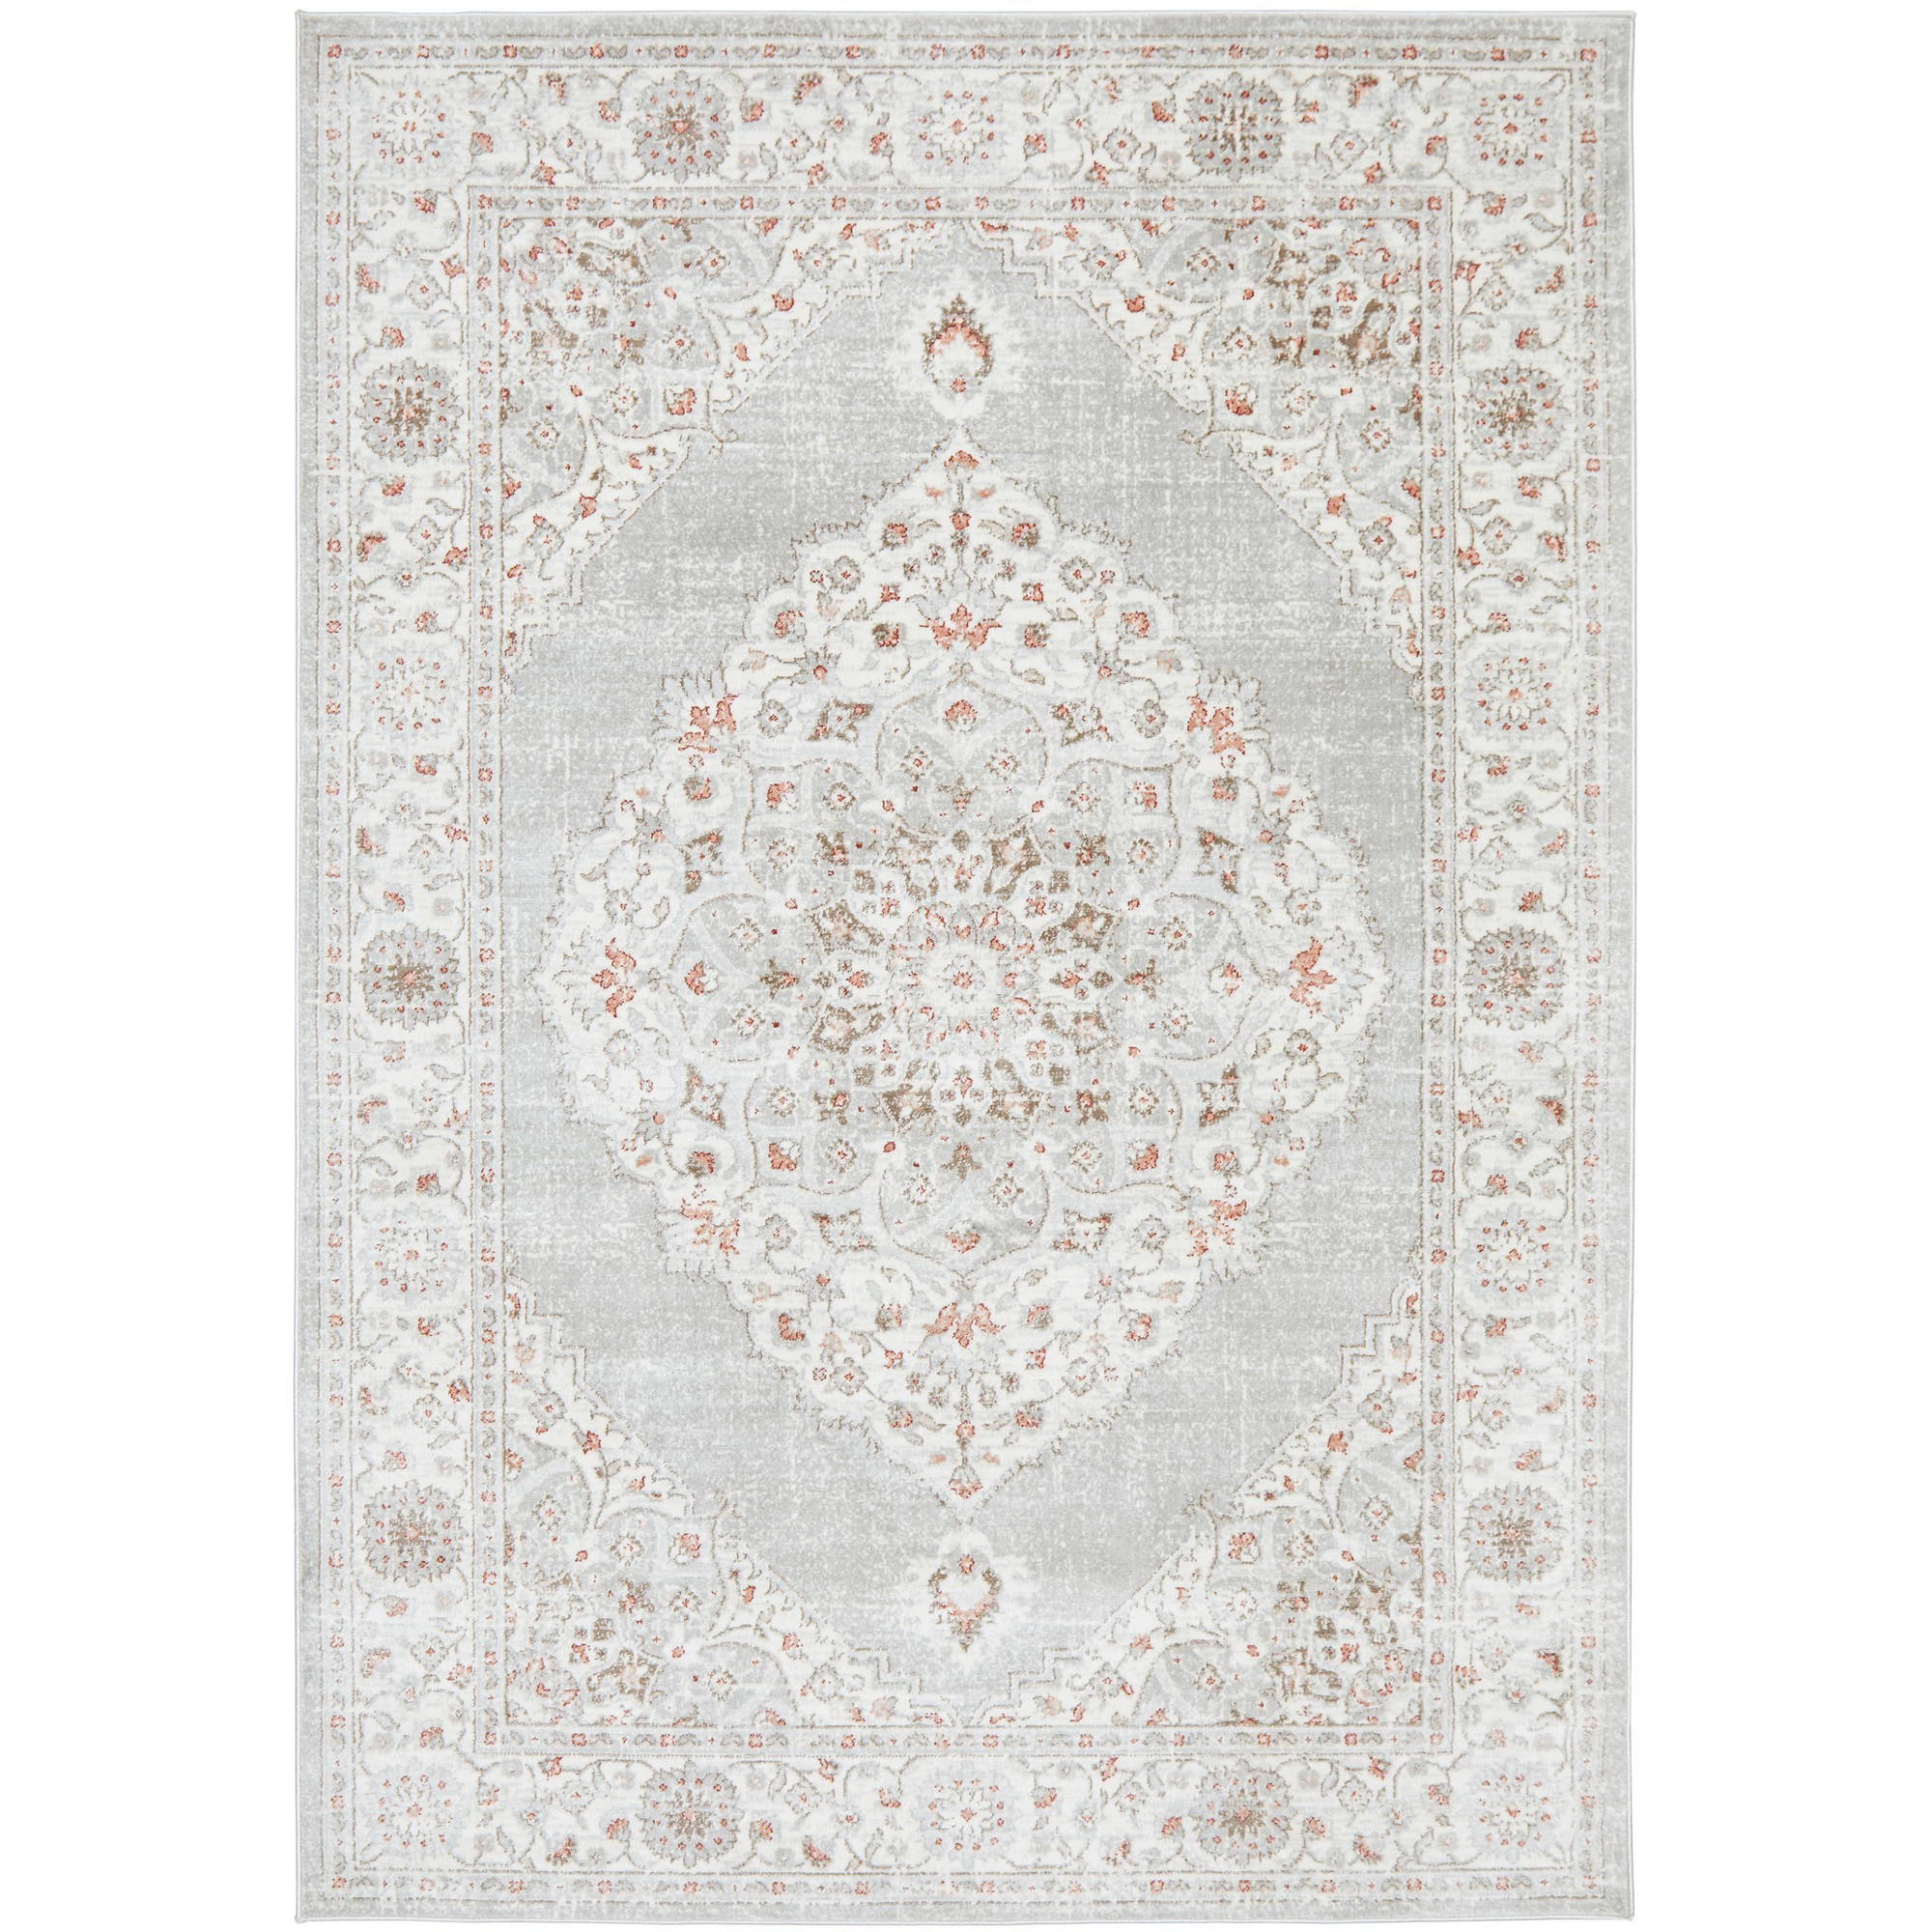 Emotion No.77 Bohemian Rug, 230x160cm, Rose